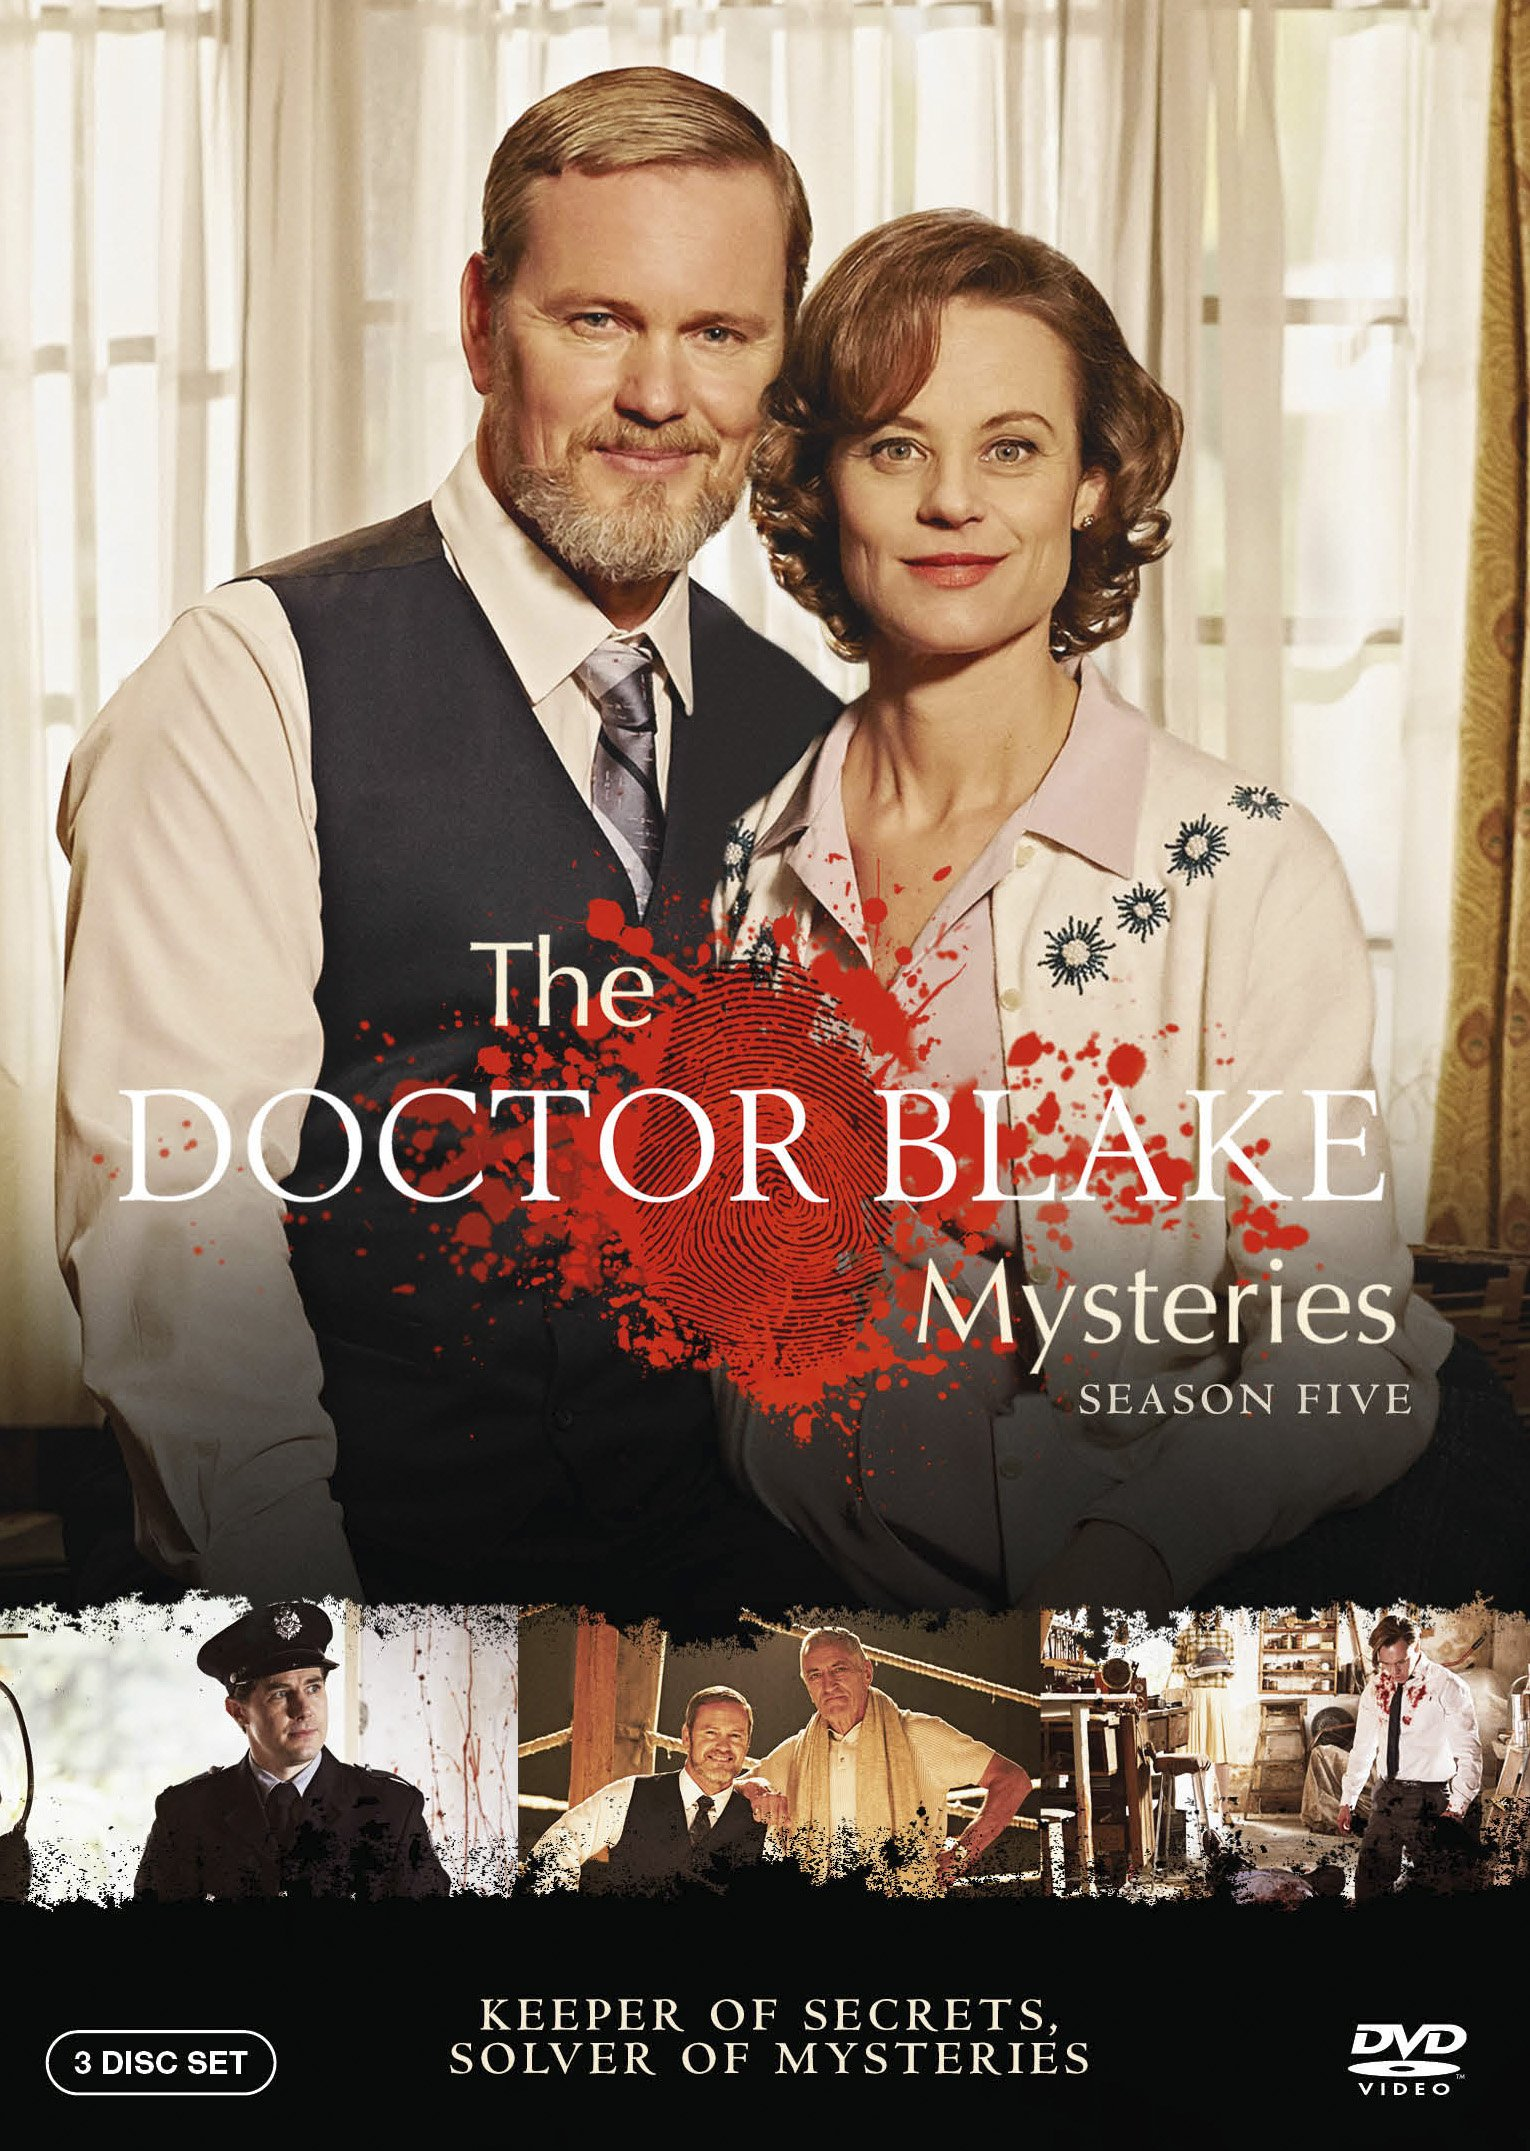 Doctor Blake Mysteries: Season Five